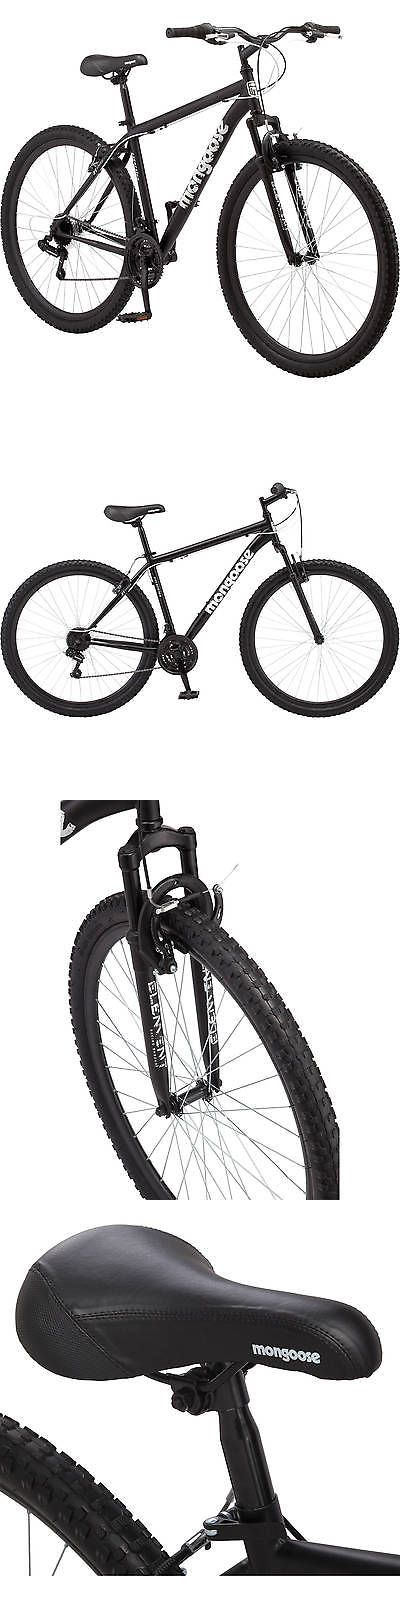 bicycles: 29 Men S Mongoose Mountain Bike 21-Speed Shimano Black Steel Front-Suspension -> BUY IT NOW ONLY: $142.97 on eBay!